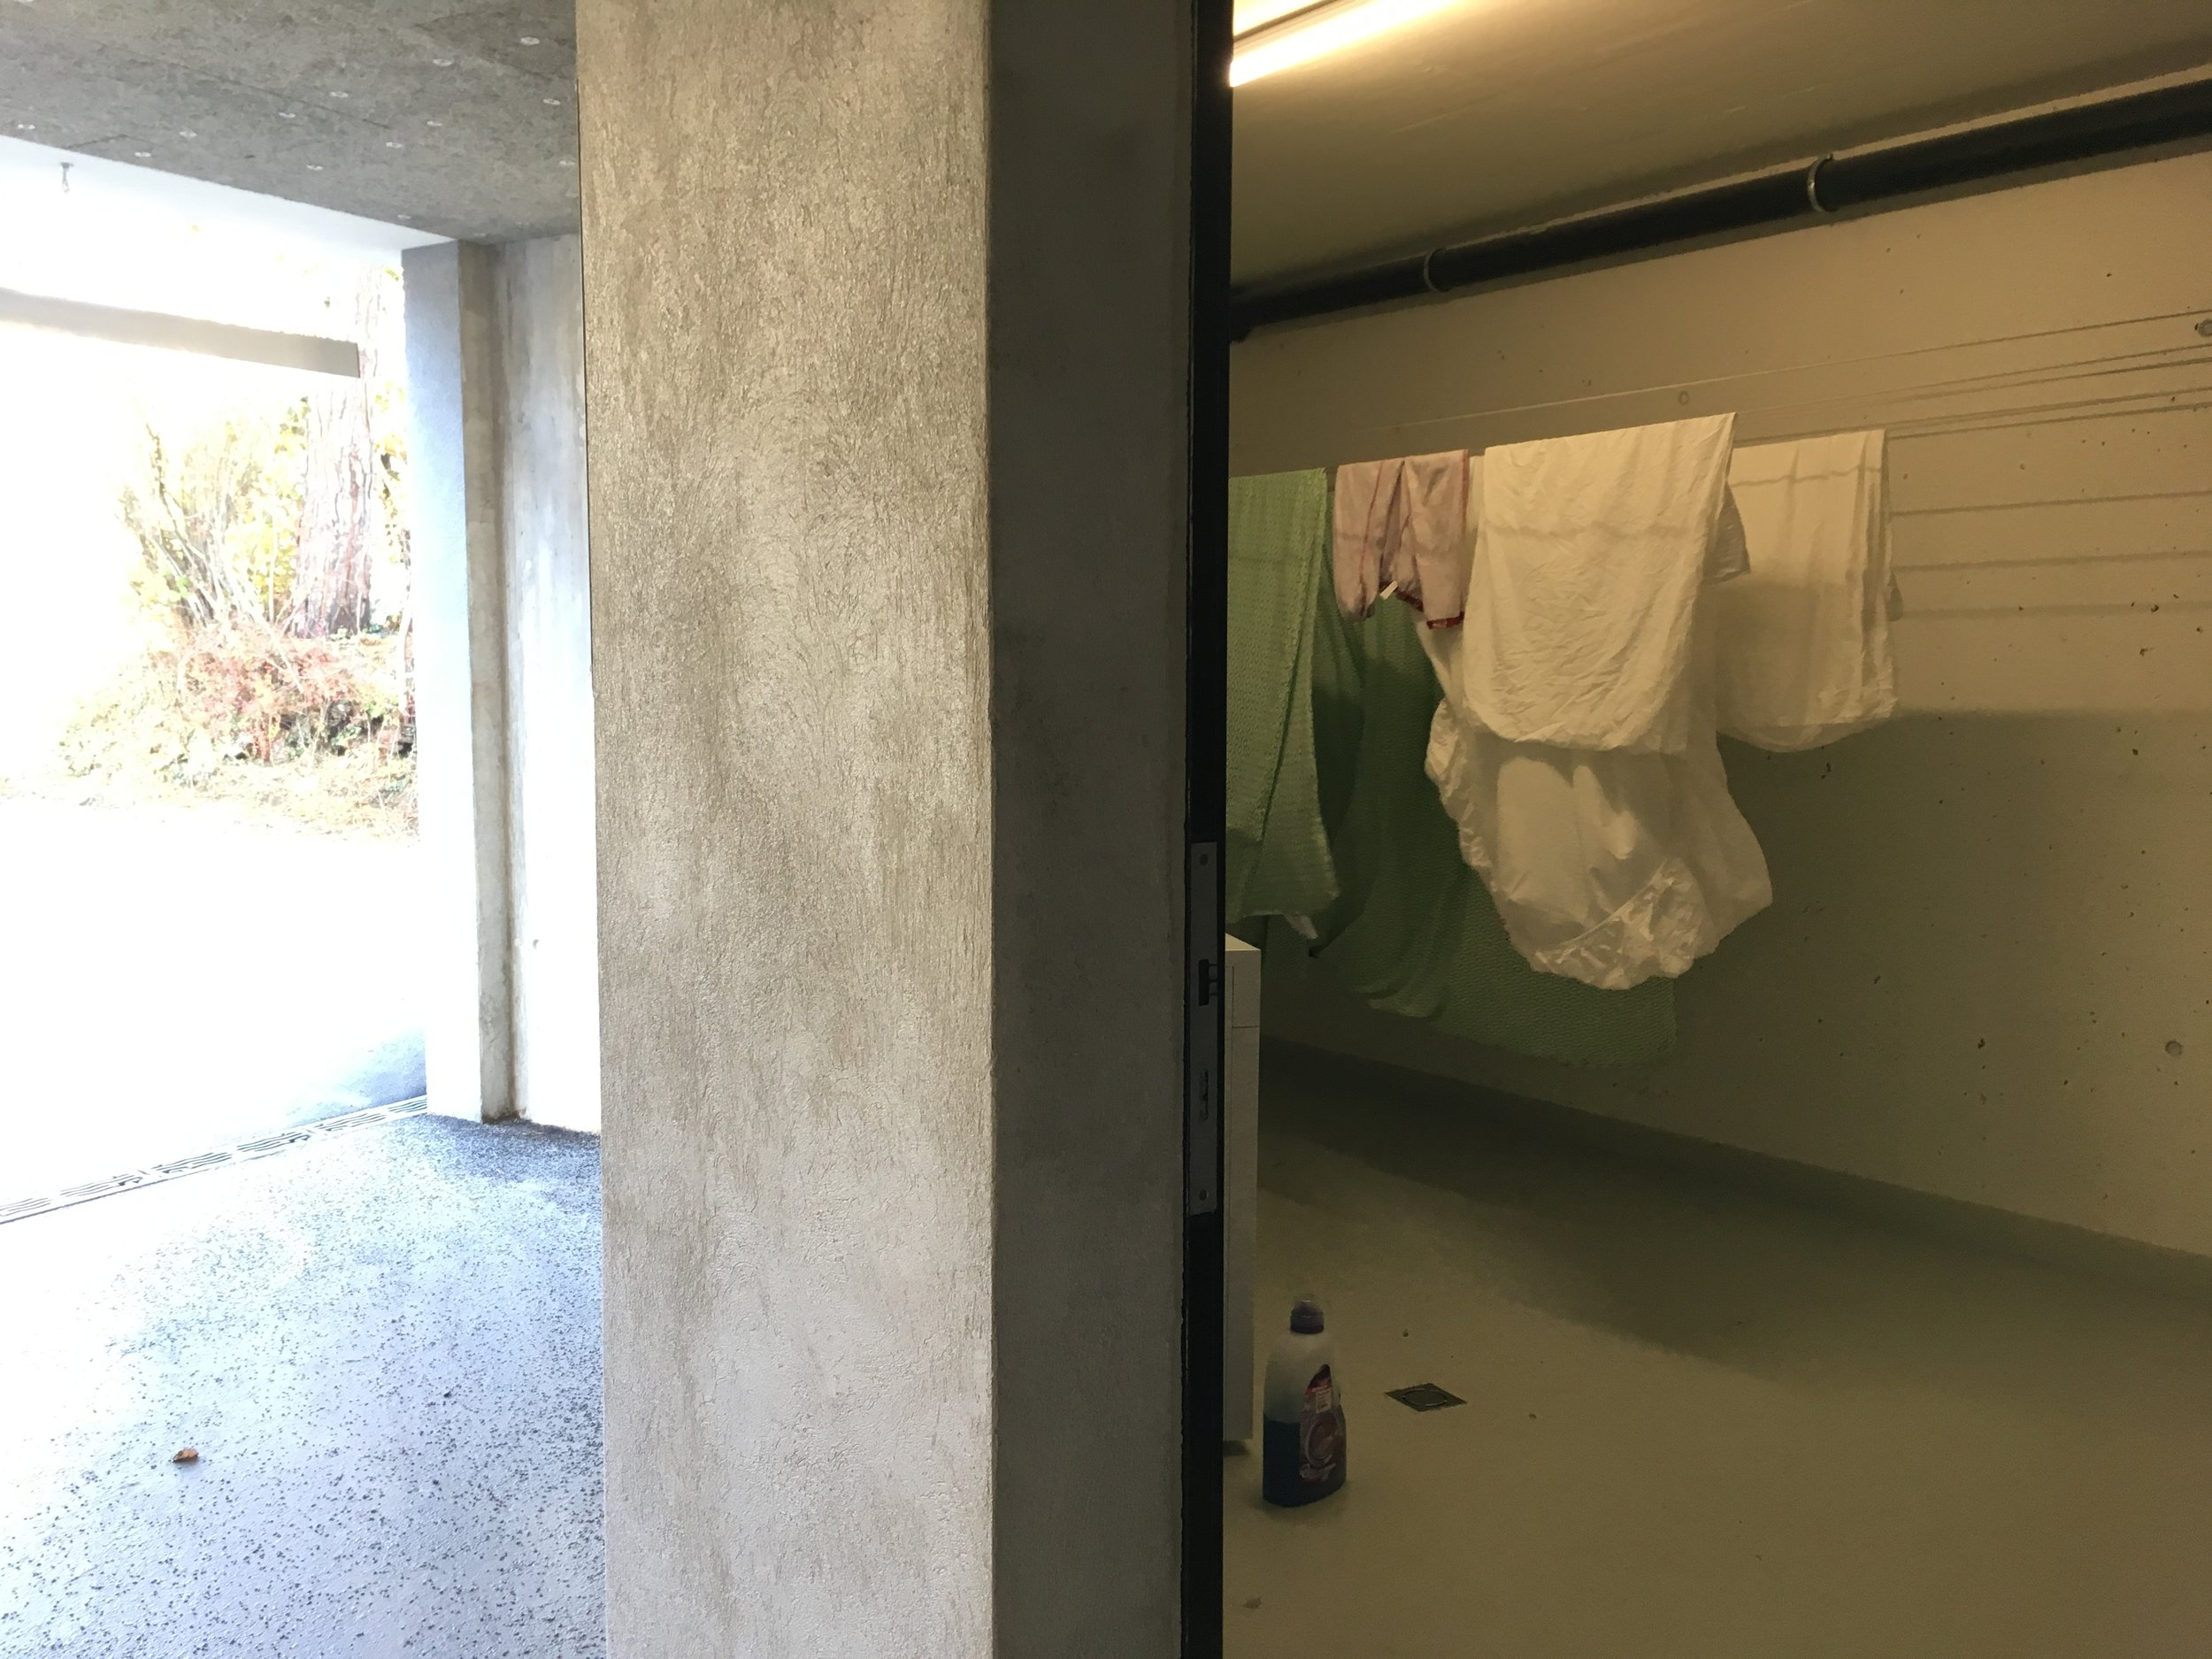 One quick run down 3 flights of stairs and through the parking garage to our little laundry heaven! Despite there being a dryer that functions decidedly differently that what we are used to, we too have 'swissified' ourselves and love hanging everything to dry.